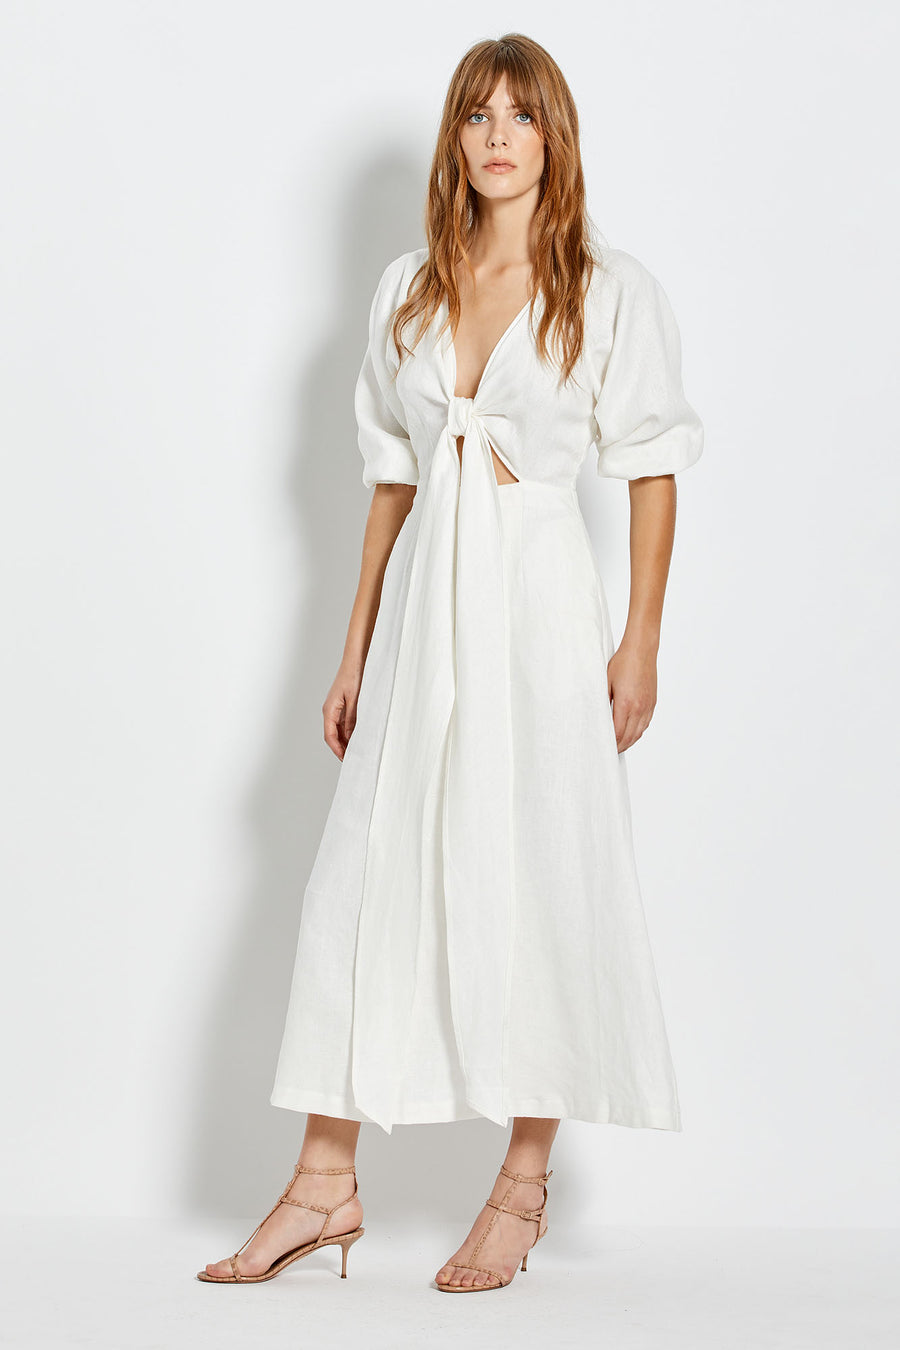 Asilah Dress - White